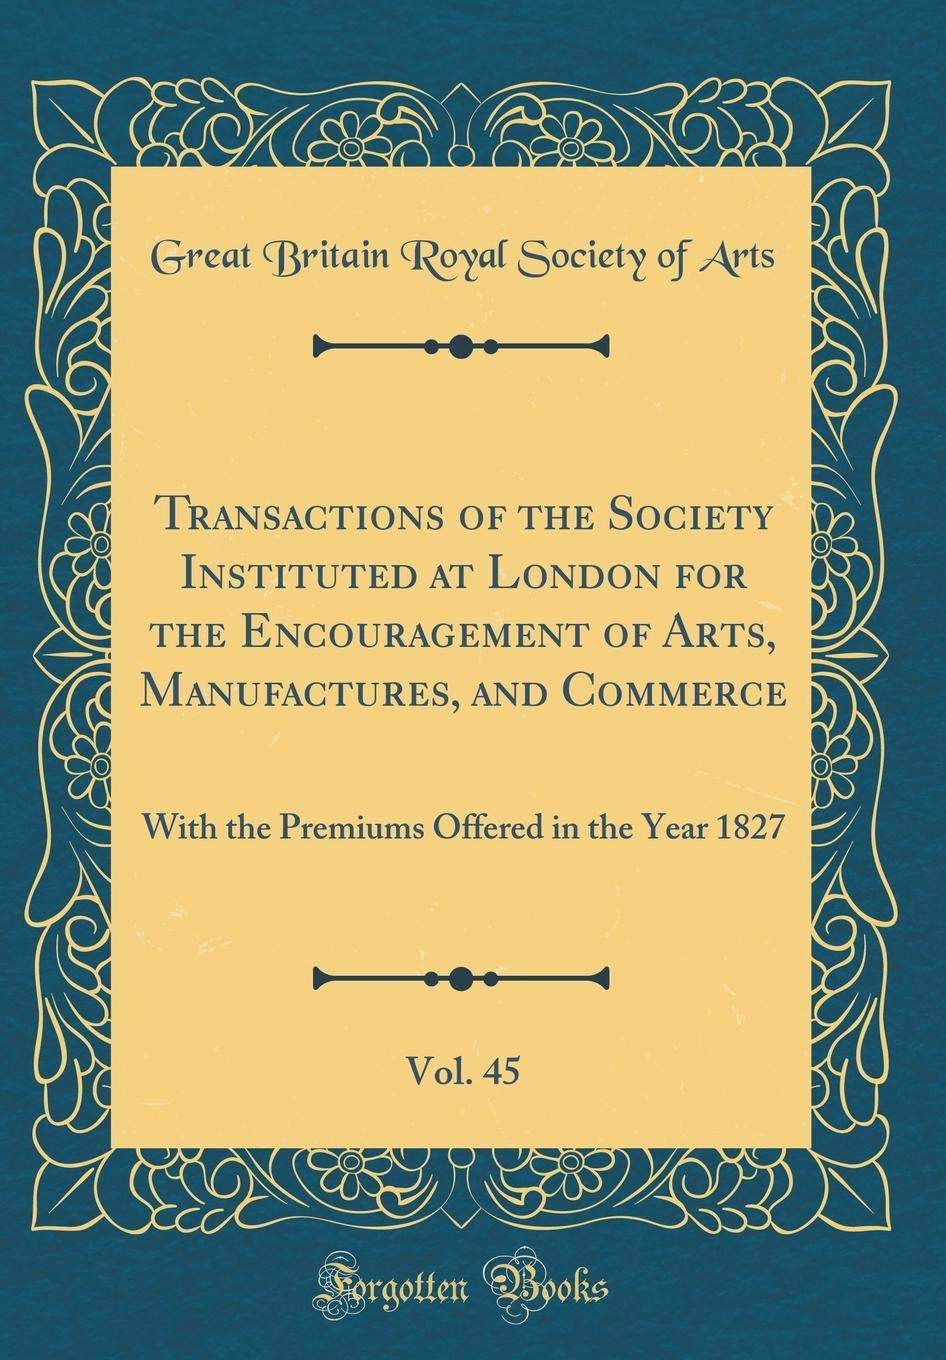 Transactions of the Society Instituted at London for the Encouragement of Arts, Manufactures, and Commerce, Vol. 45: With the Premiums Offered in the Year 1827 (Classic Reprint) pdf epub